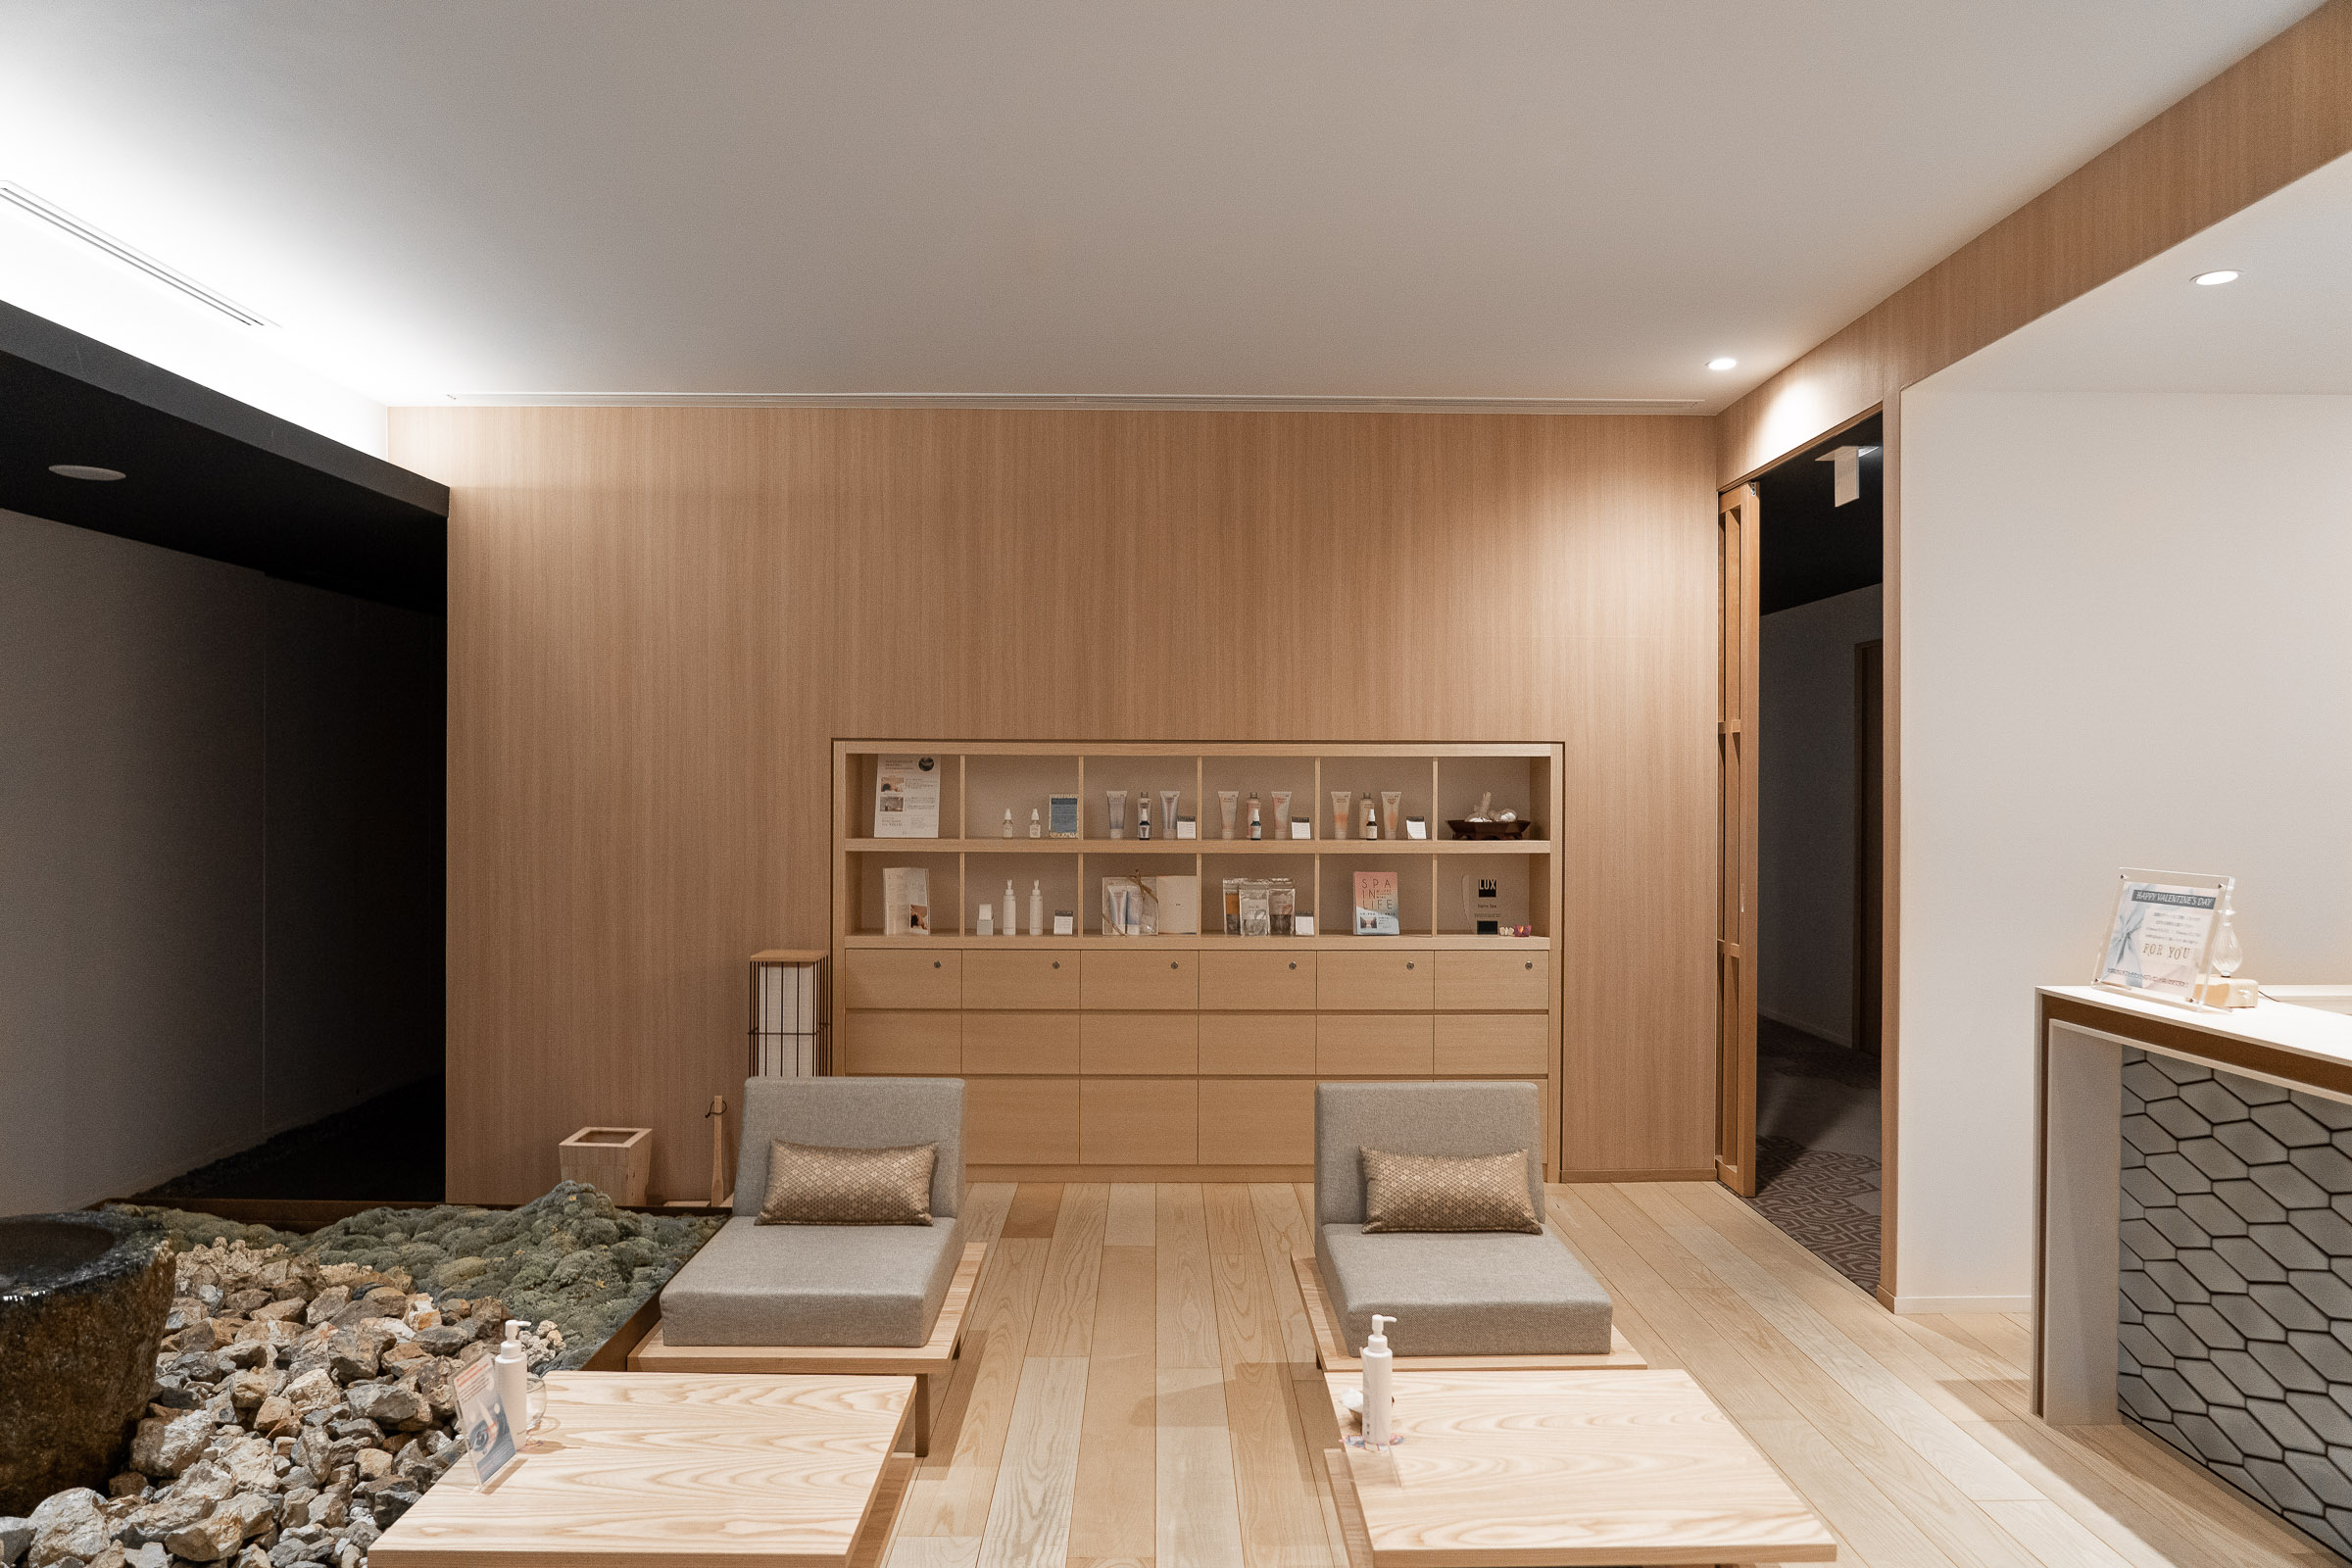 Kanra Spa Kyoto Review - HEY GENTS Magazine